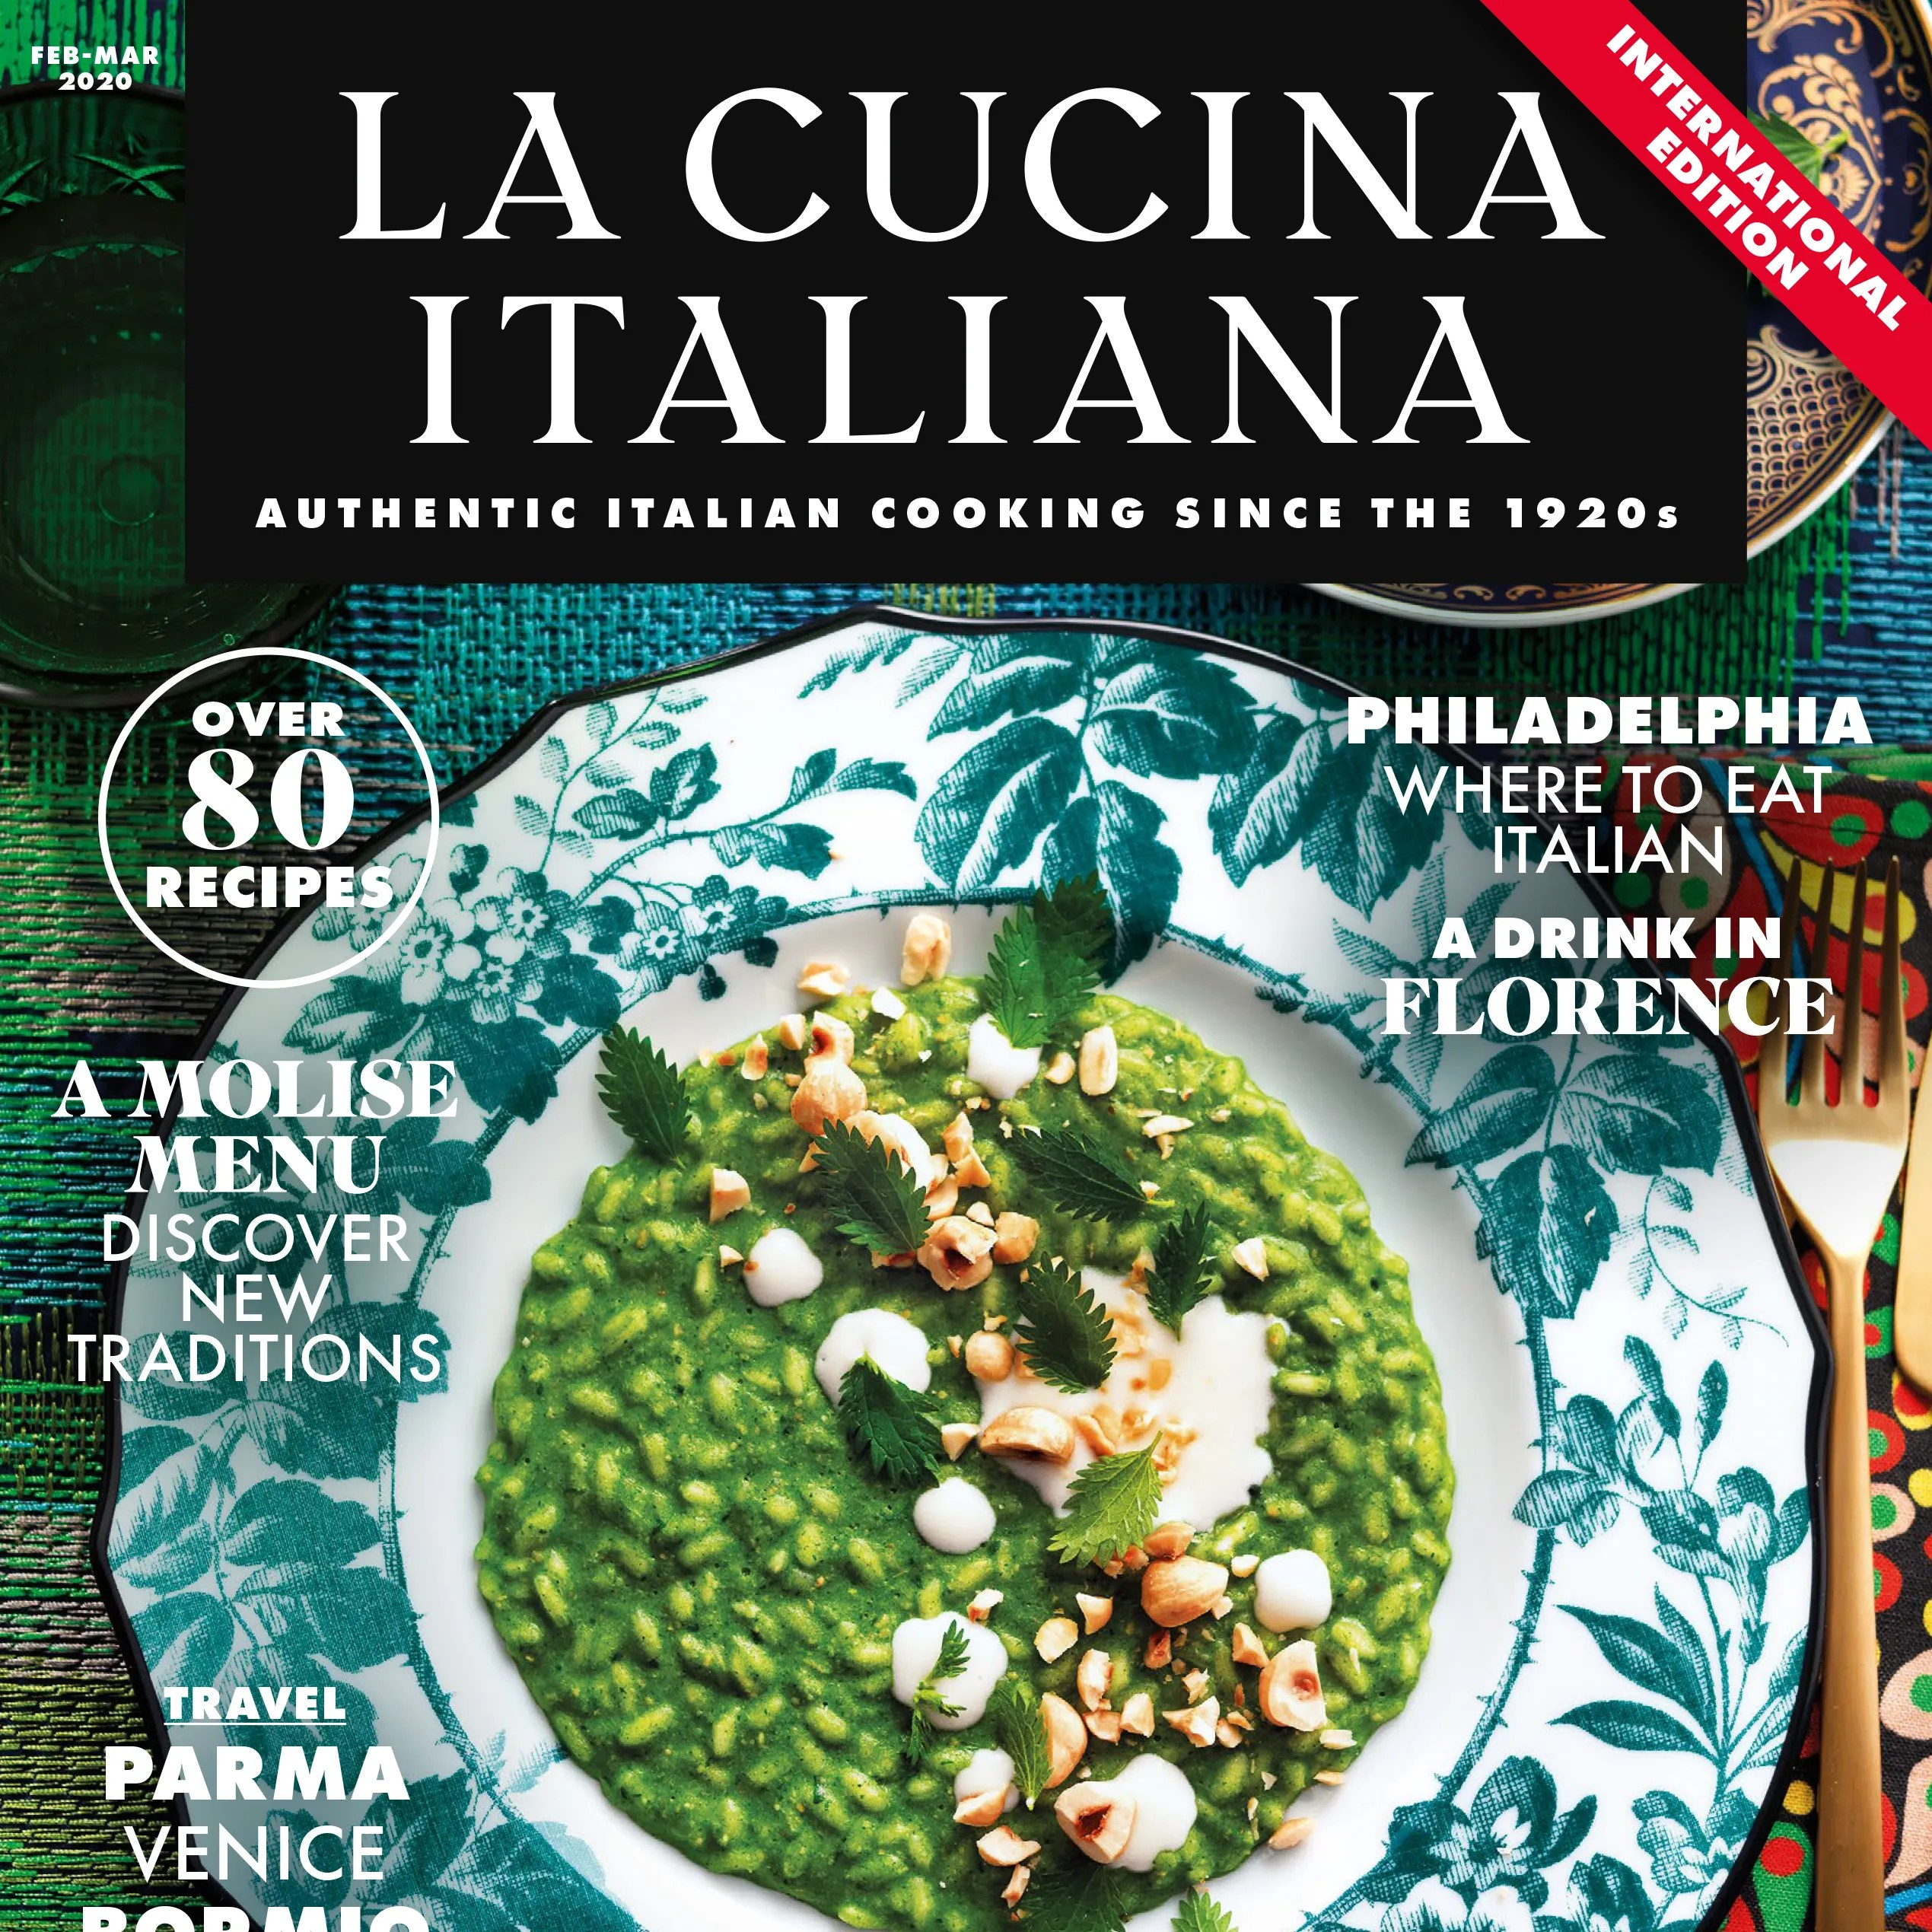 La Cucina Italiana Recipes Italian Dishes And Tutorials La Cucina Italiana